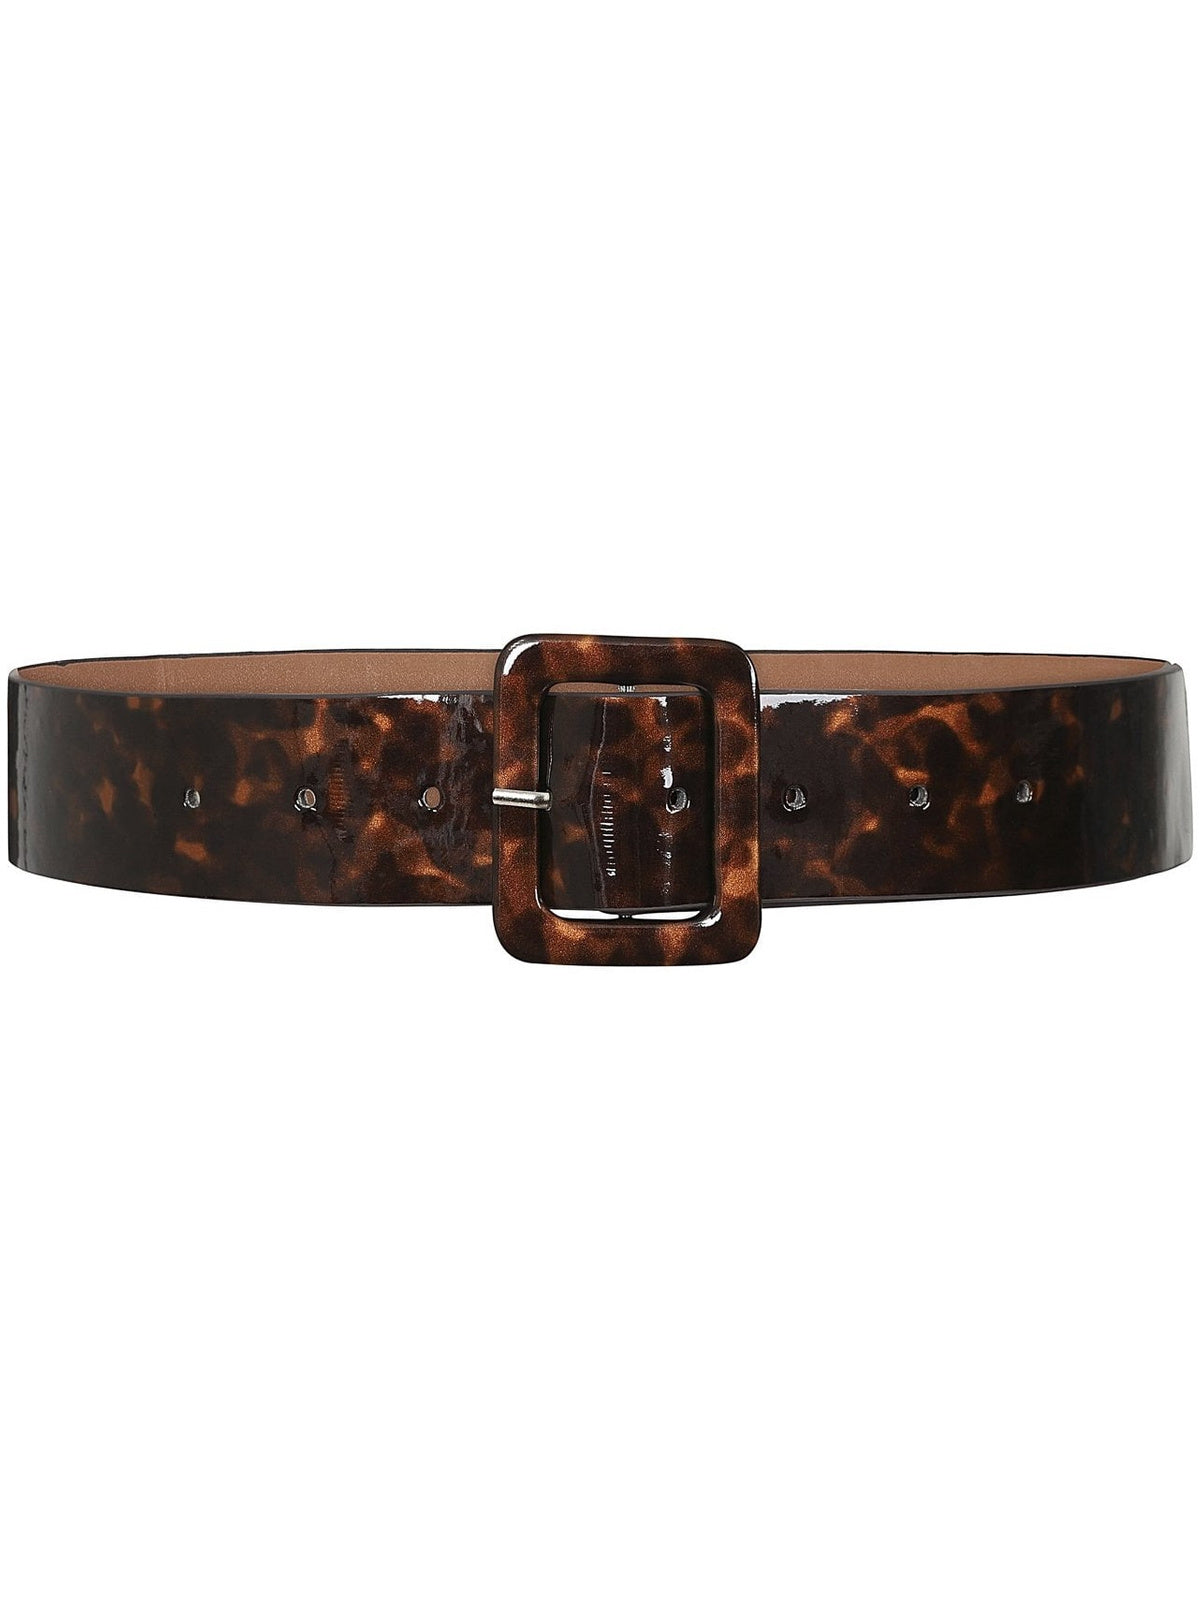 Sally Belt - Animal Print